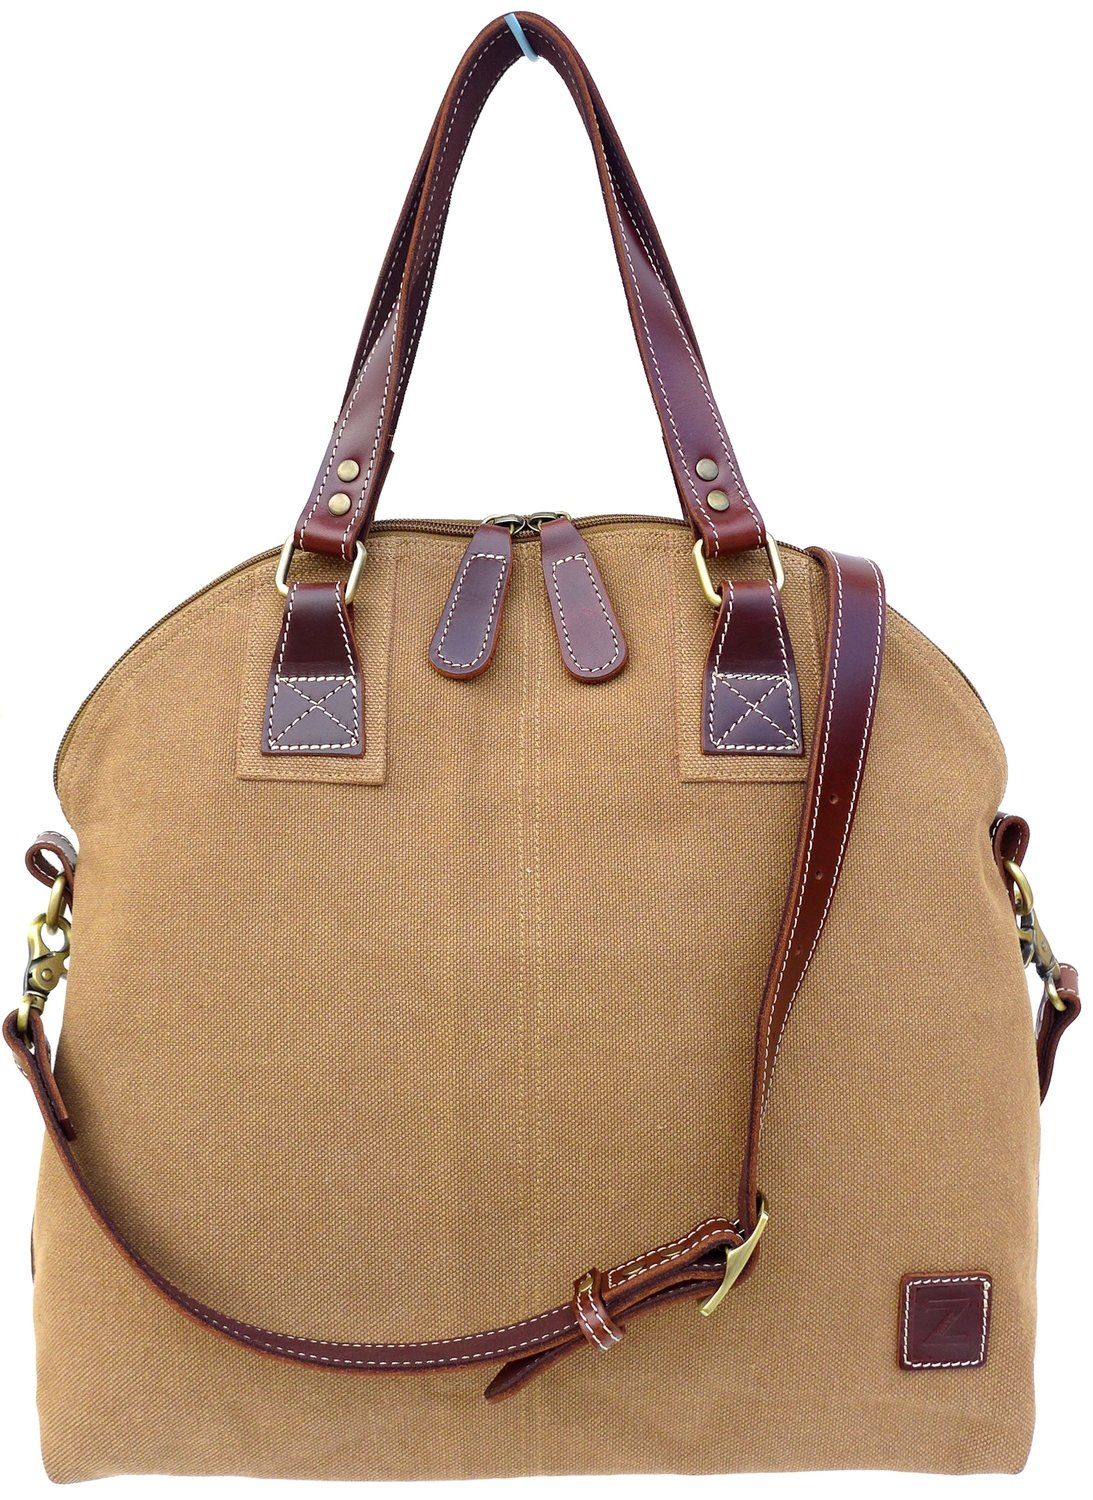 Stone-washed canvas and leather top zip shoulder bag with cross-body strap (beige)